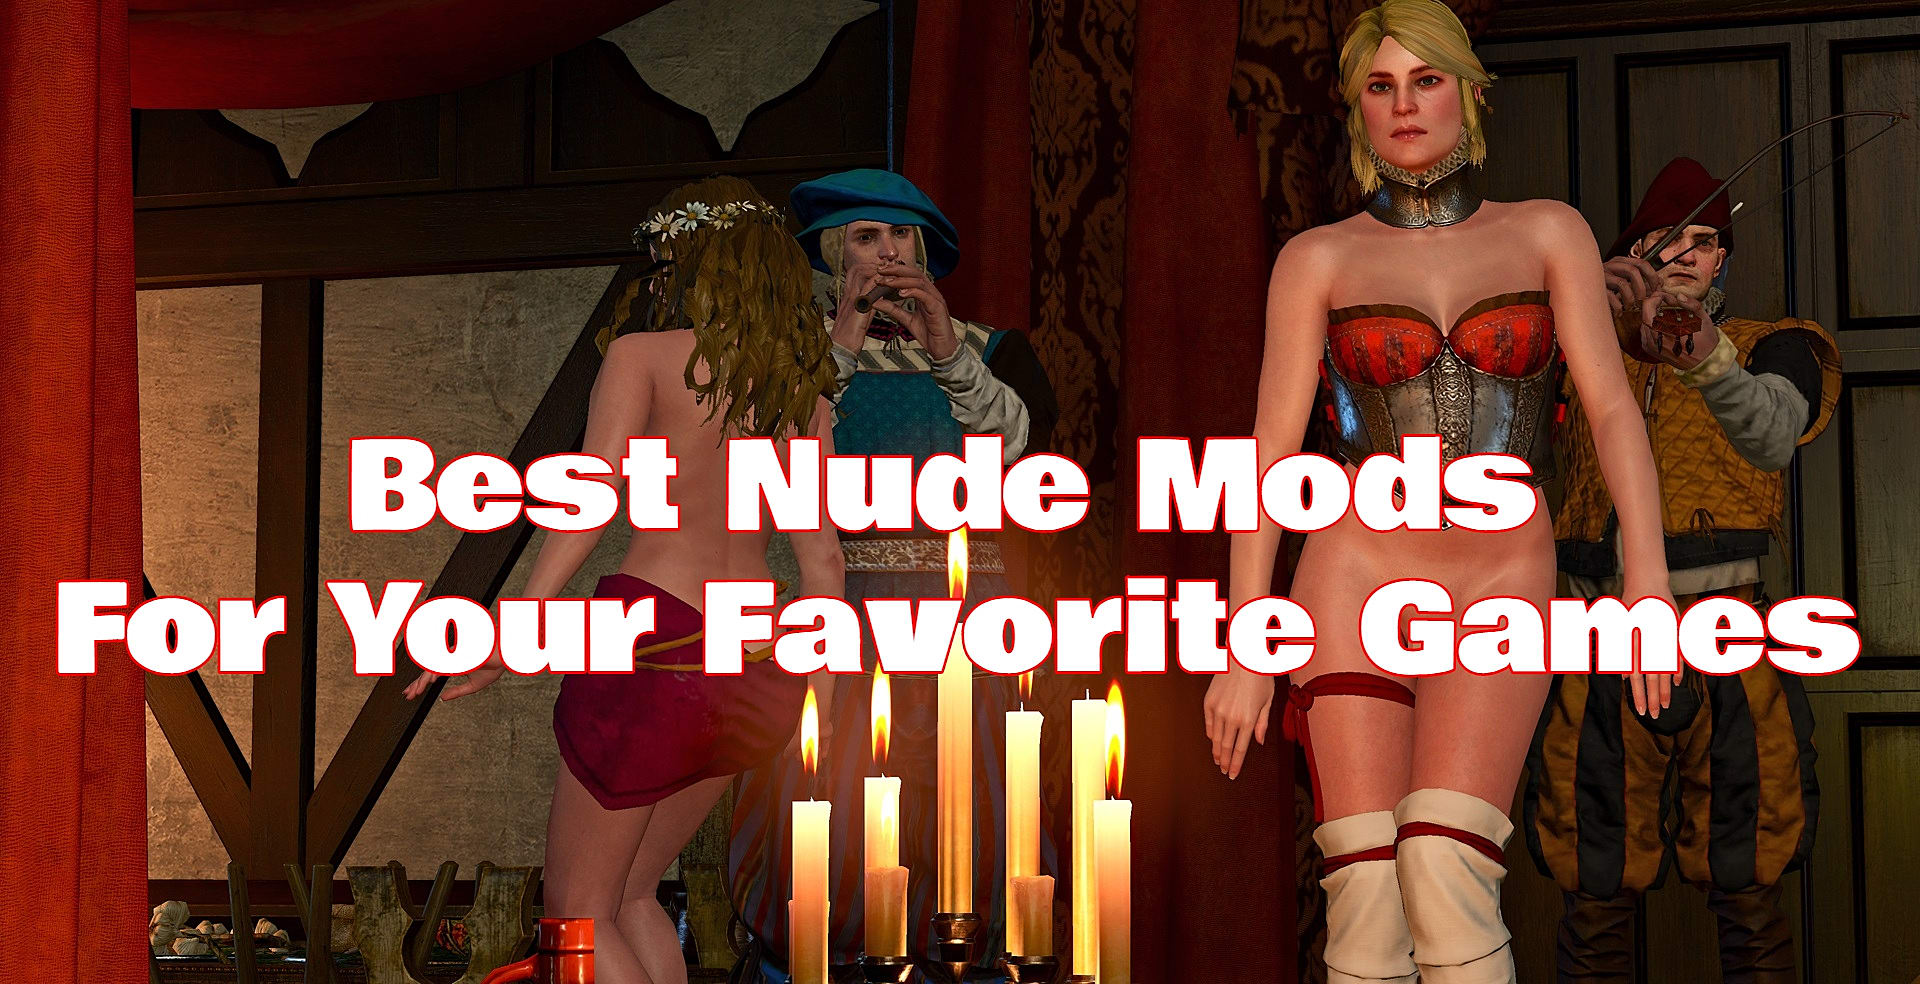 11 More Nsfw Nude Mods From Your Favorite Games-9808